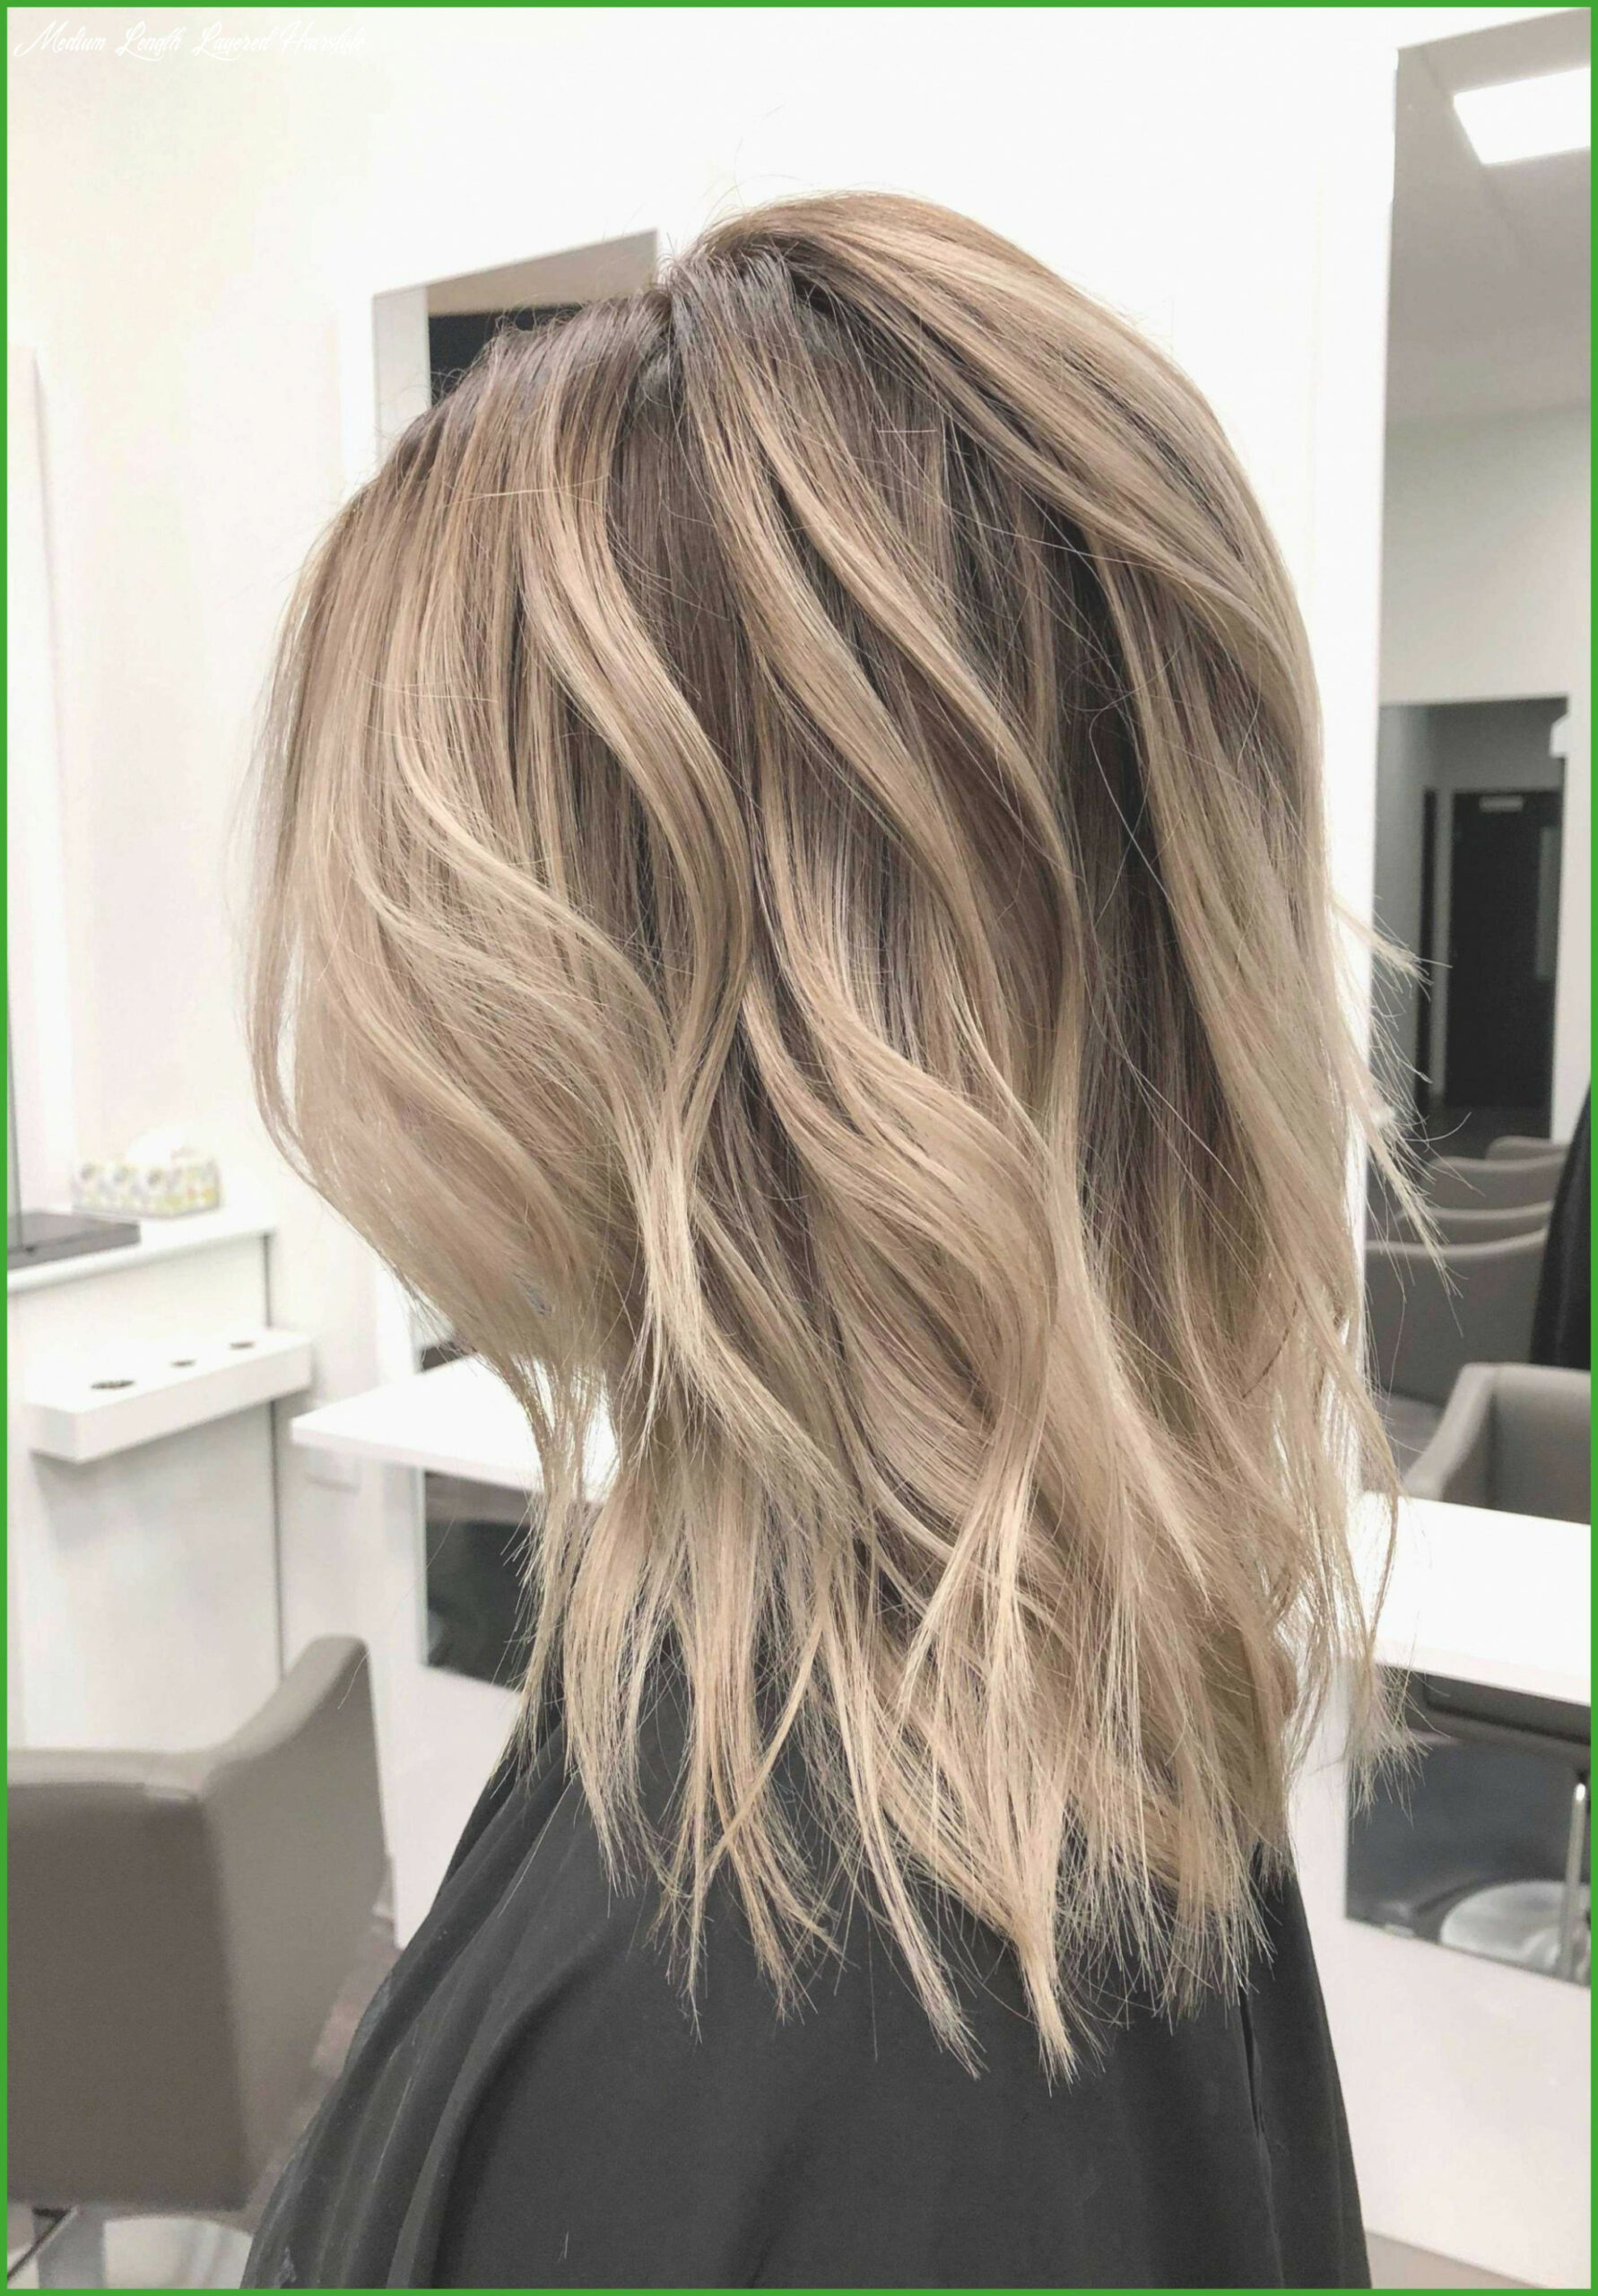 Medium length layered hairstyles awesome 11 great shoulder length